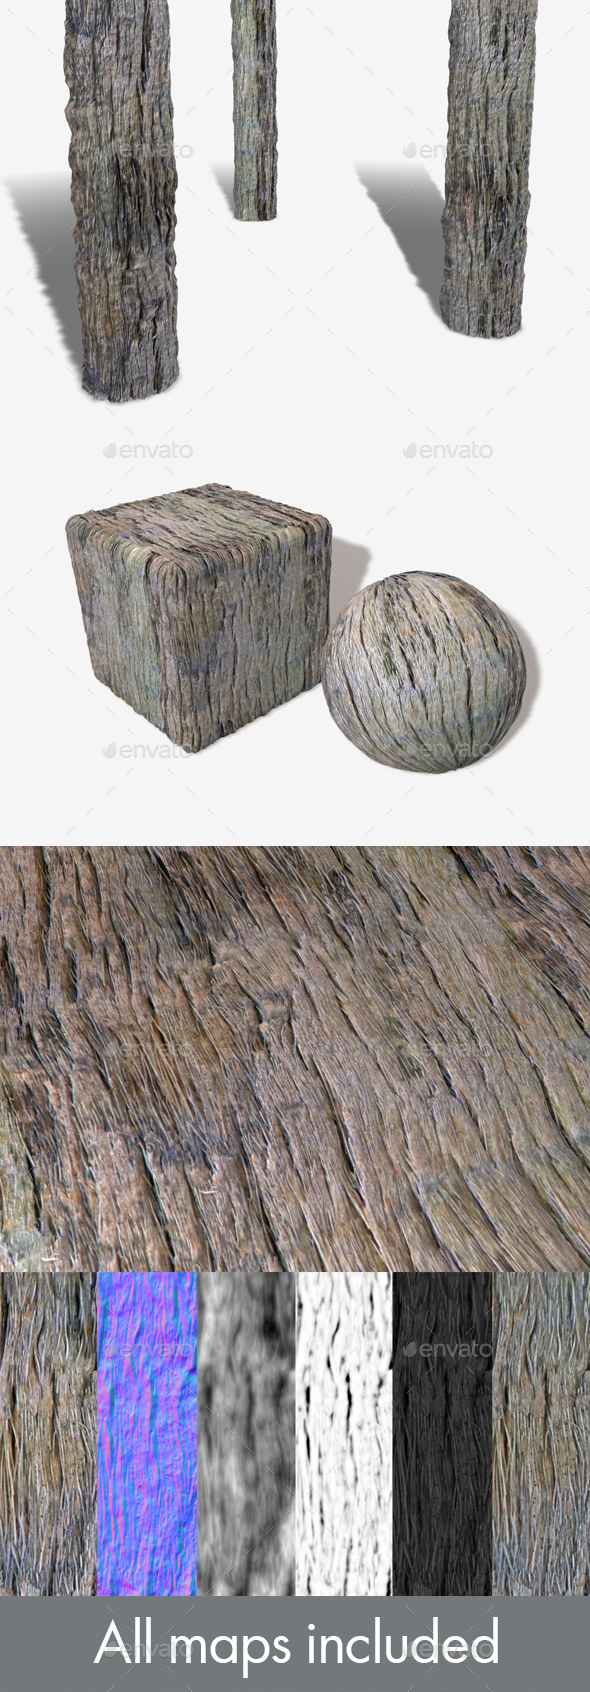 Dry Splintered Bark Seamless Texture - 3DOcean Item for Sale